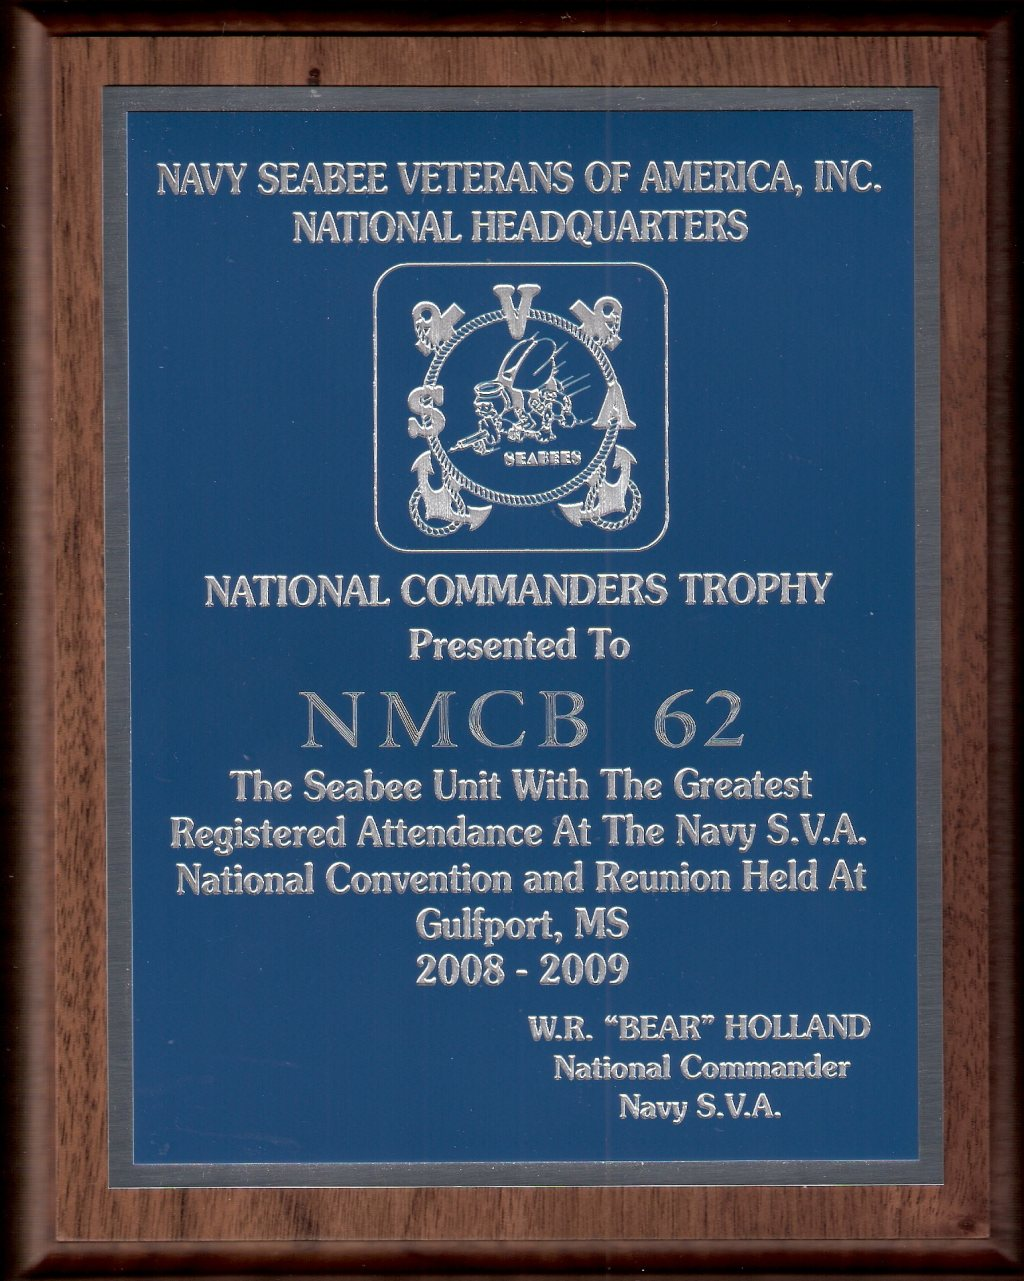 National Commanders Trophy October 2009 National Convention Gulfport, MS